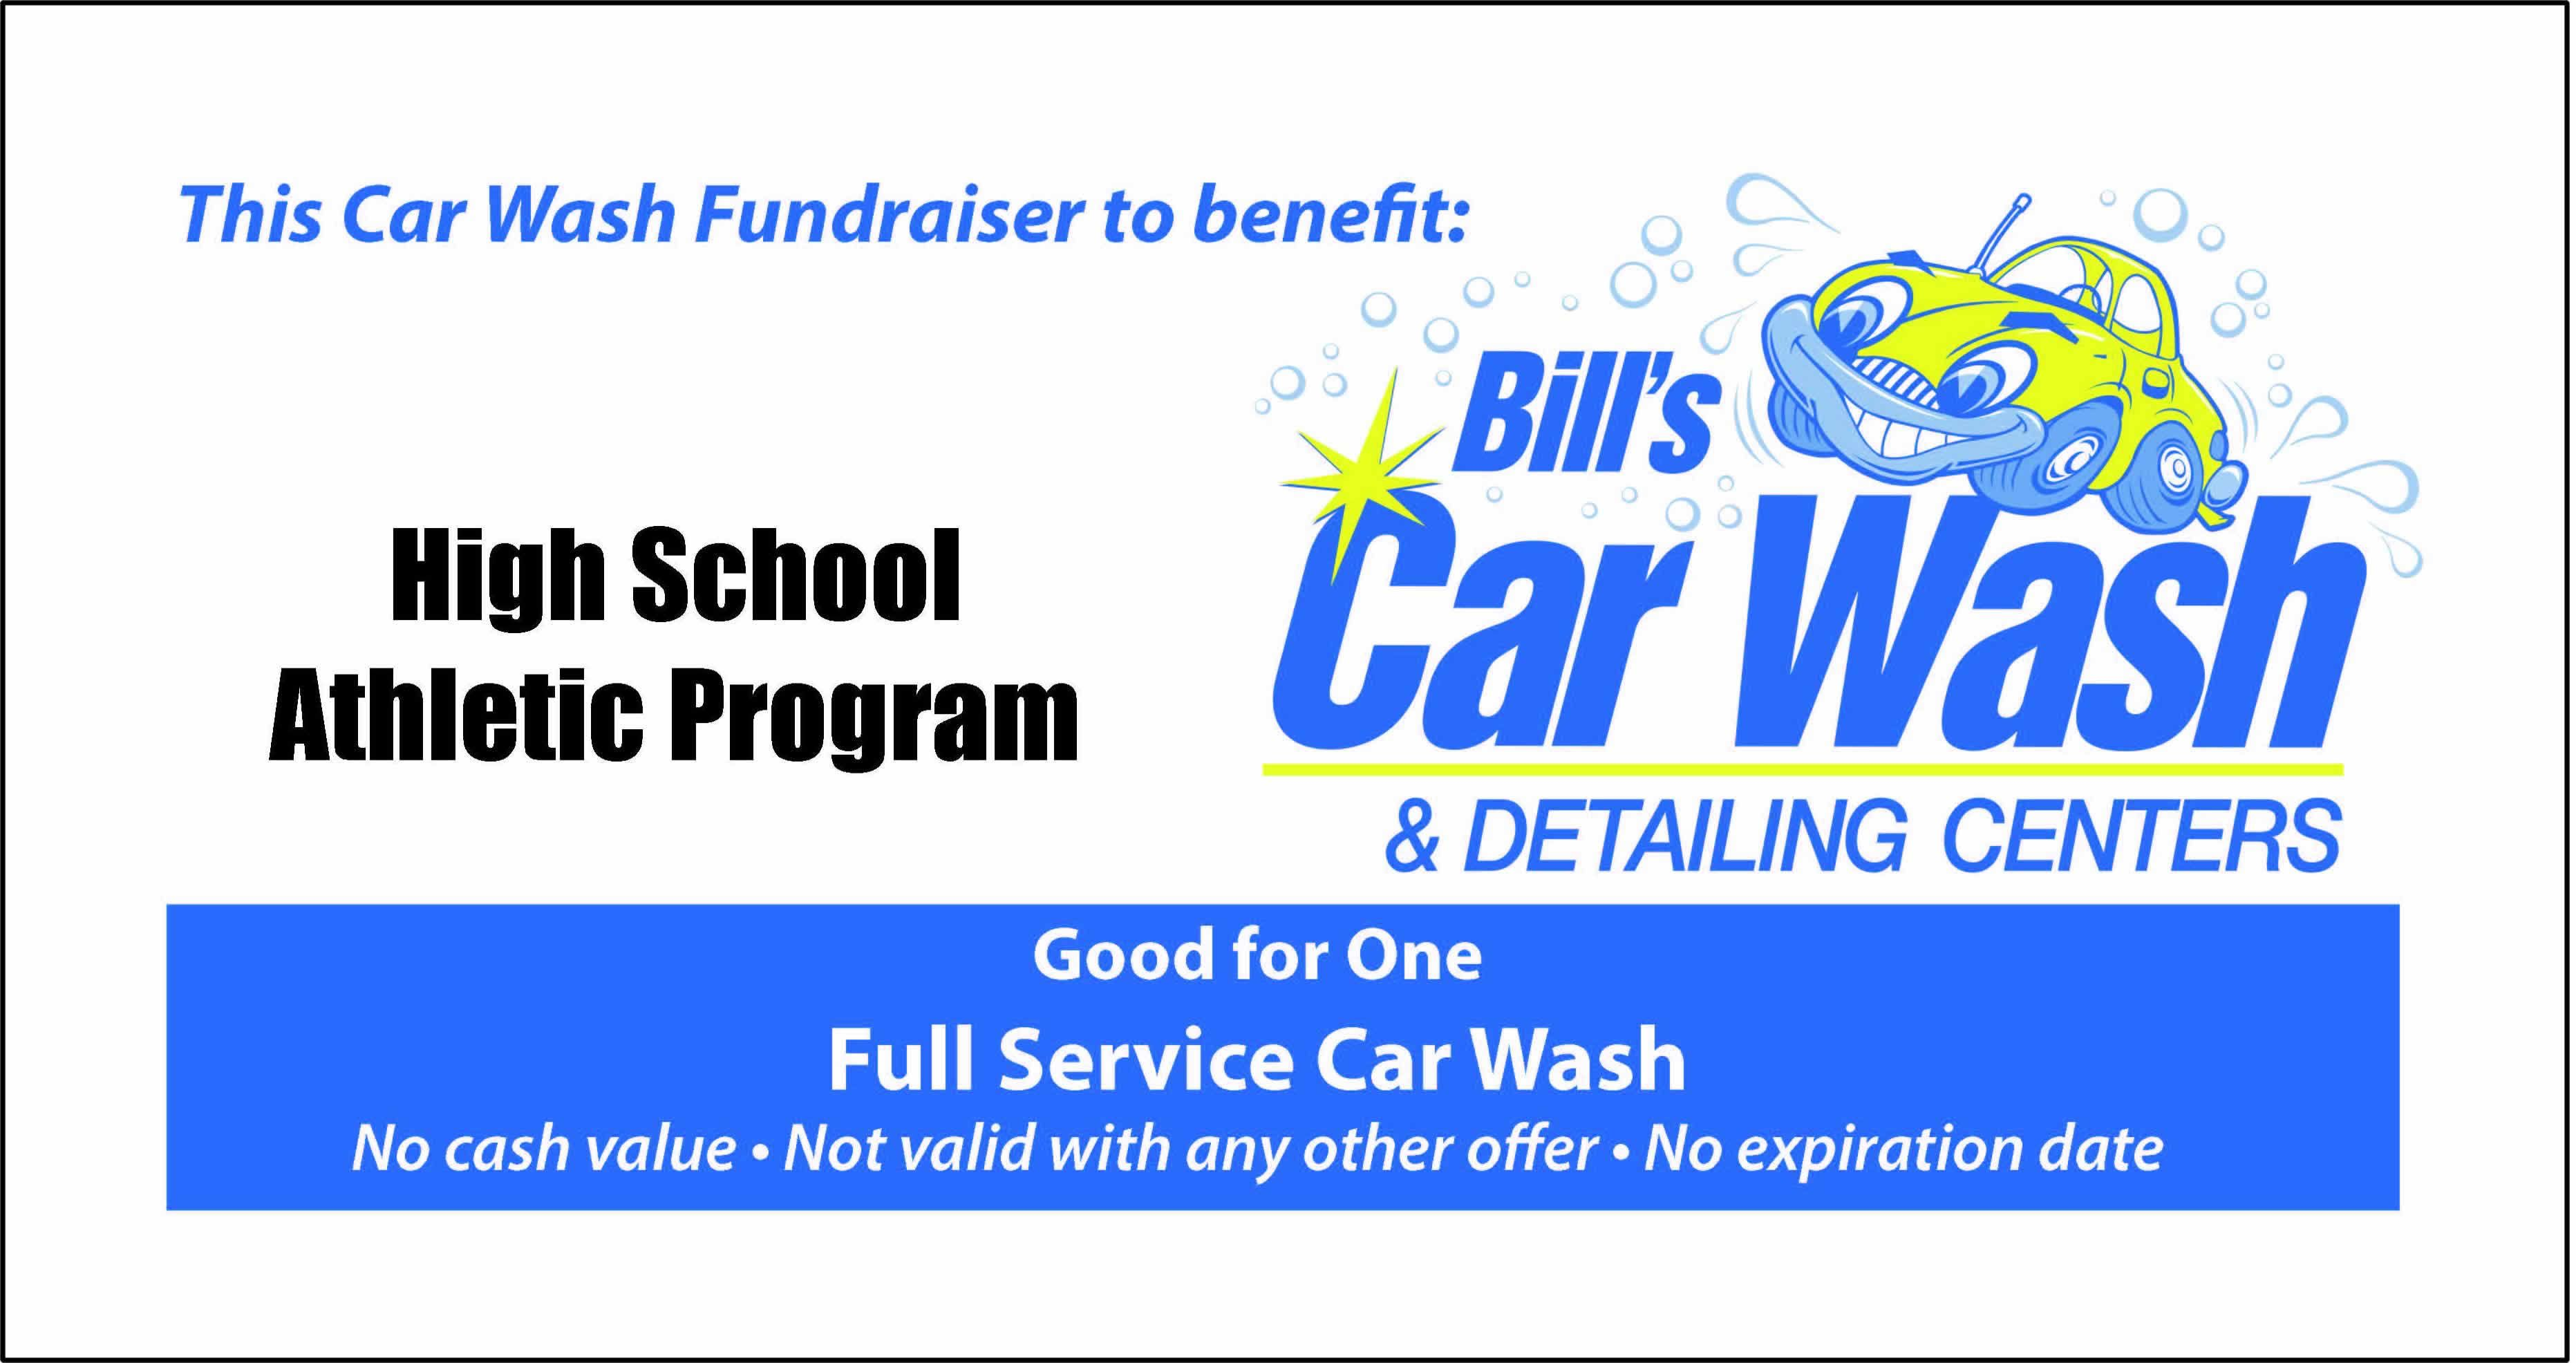 Car wash fundraiser orlando car wash fundraising pinterest car wash fundraiser orlando solutioingenieria